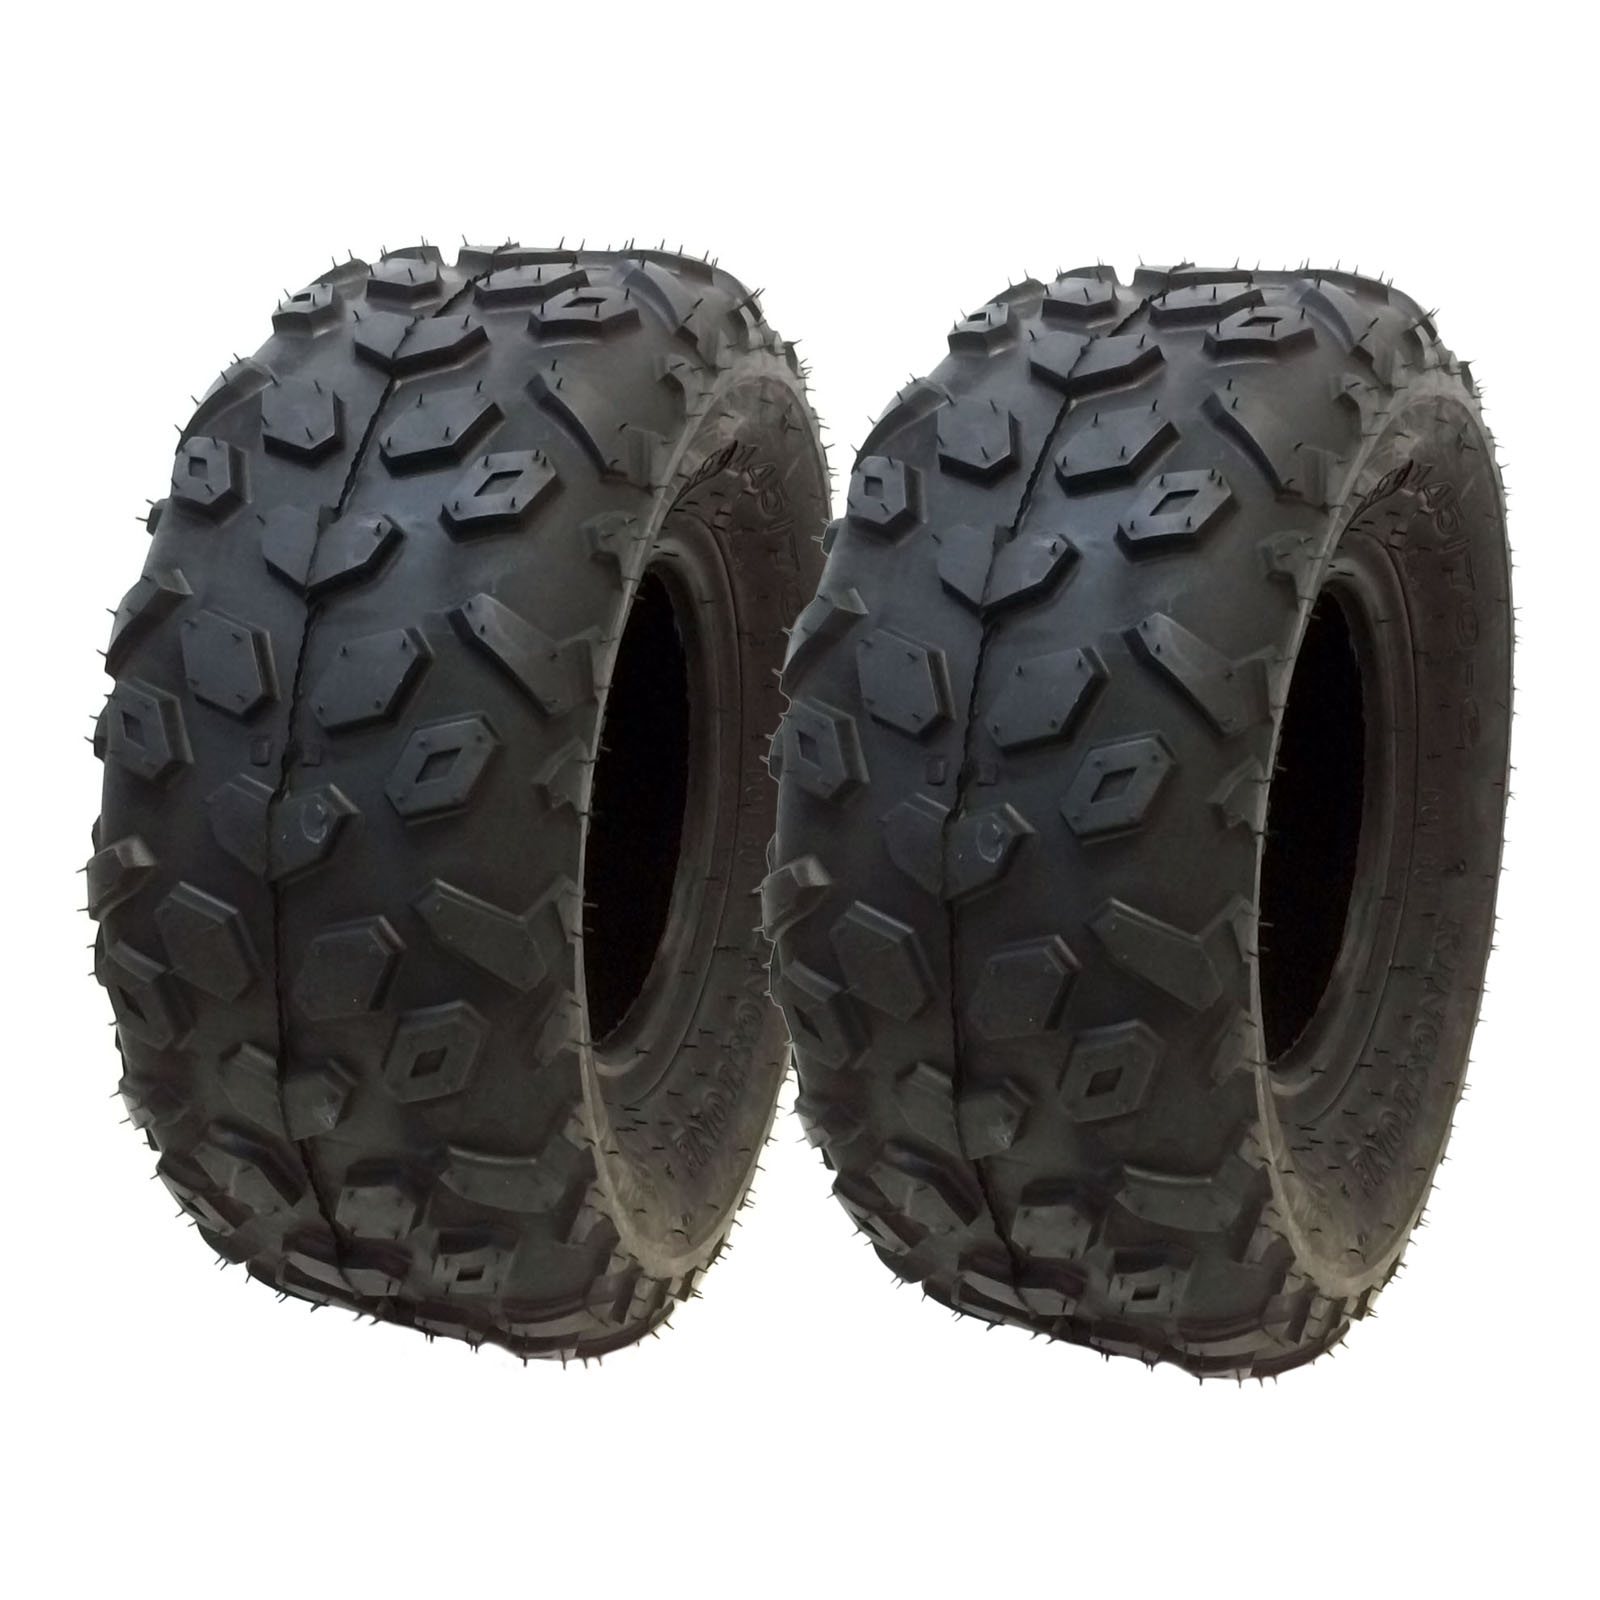 "SET OF TWO: ATV Tubeless Tires 145x70-6 (14.5x7x6) P120 - Front or Rear - for RED CAT, SUNL, SUZUKI, VENTO, Small ATV w 6"" Rims"